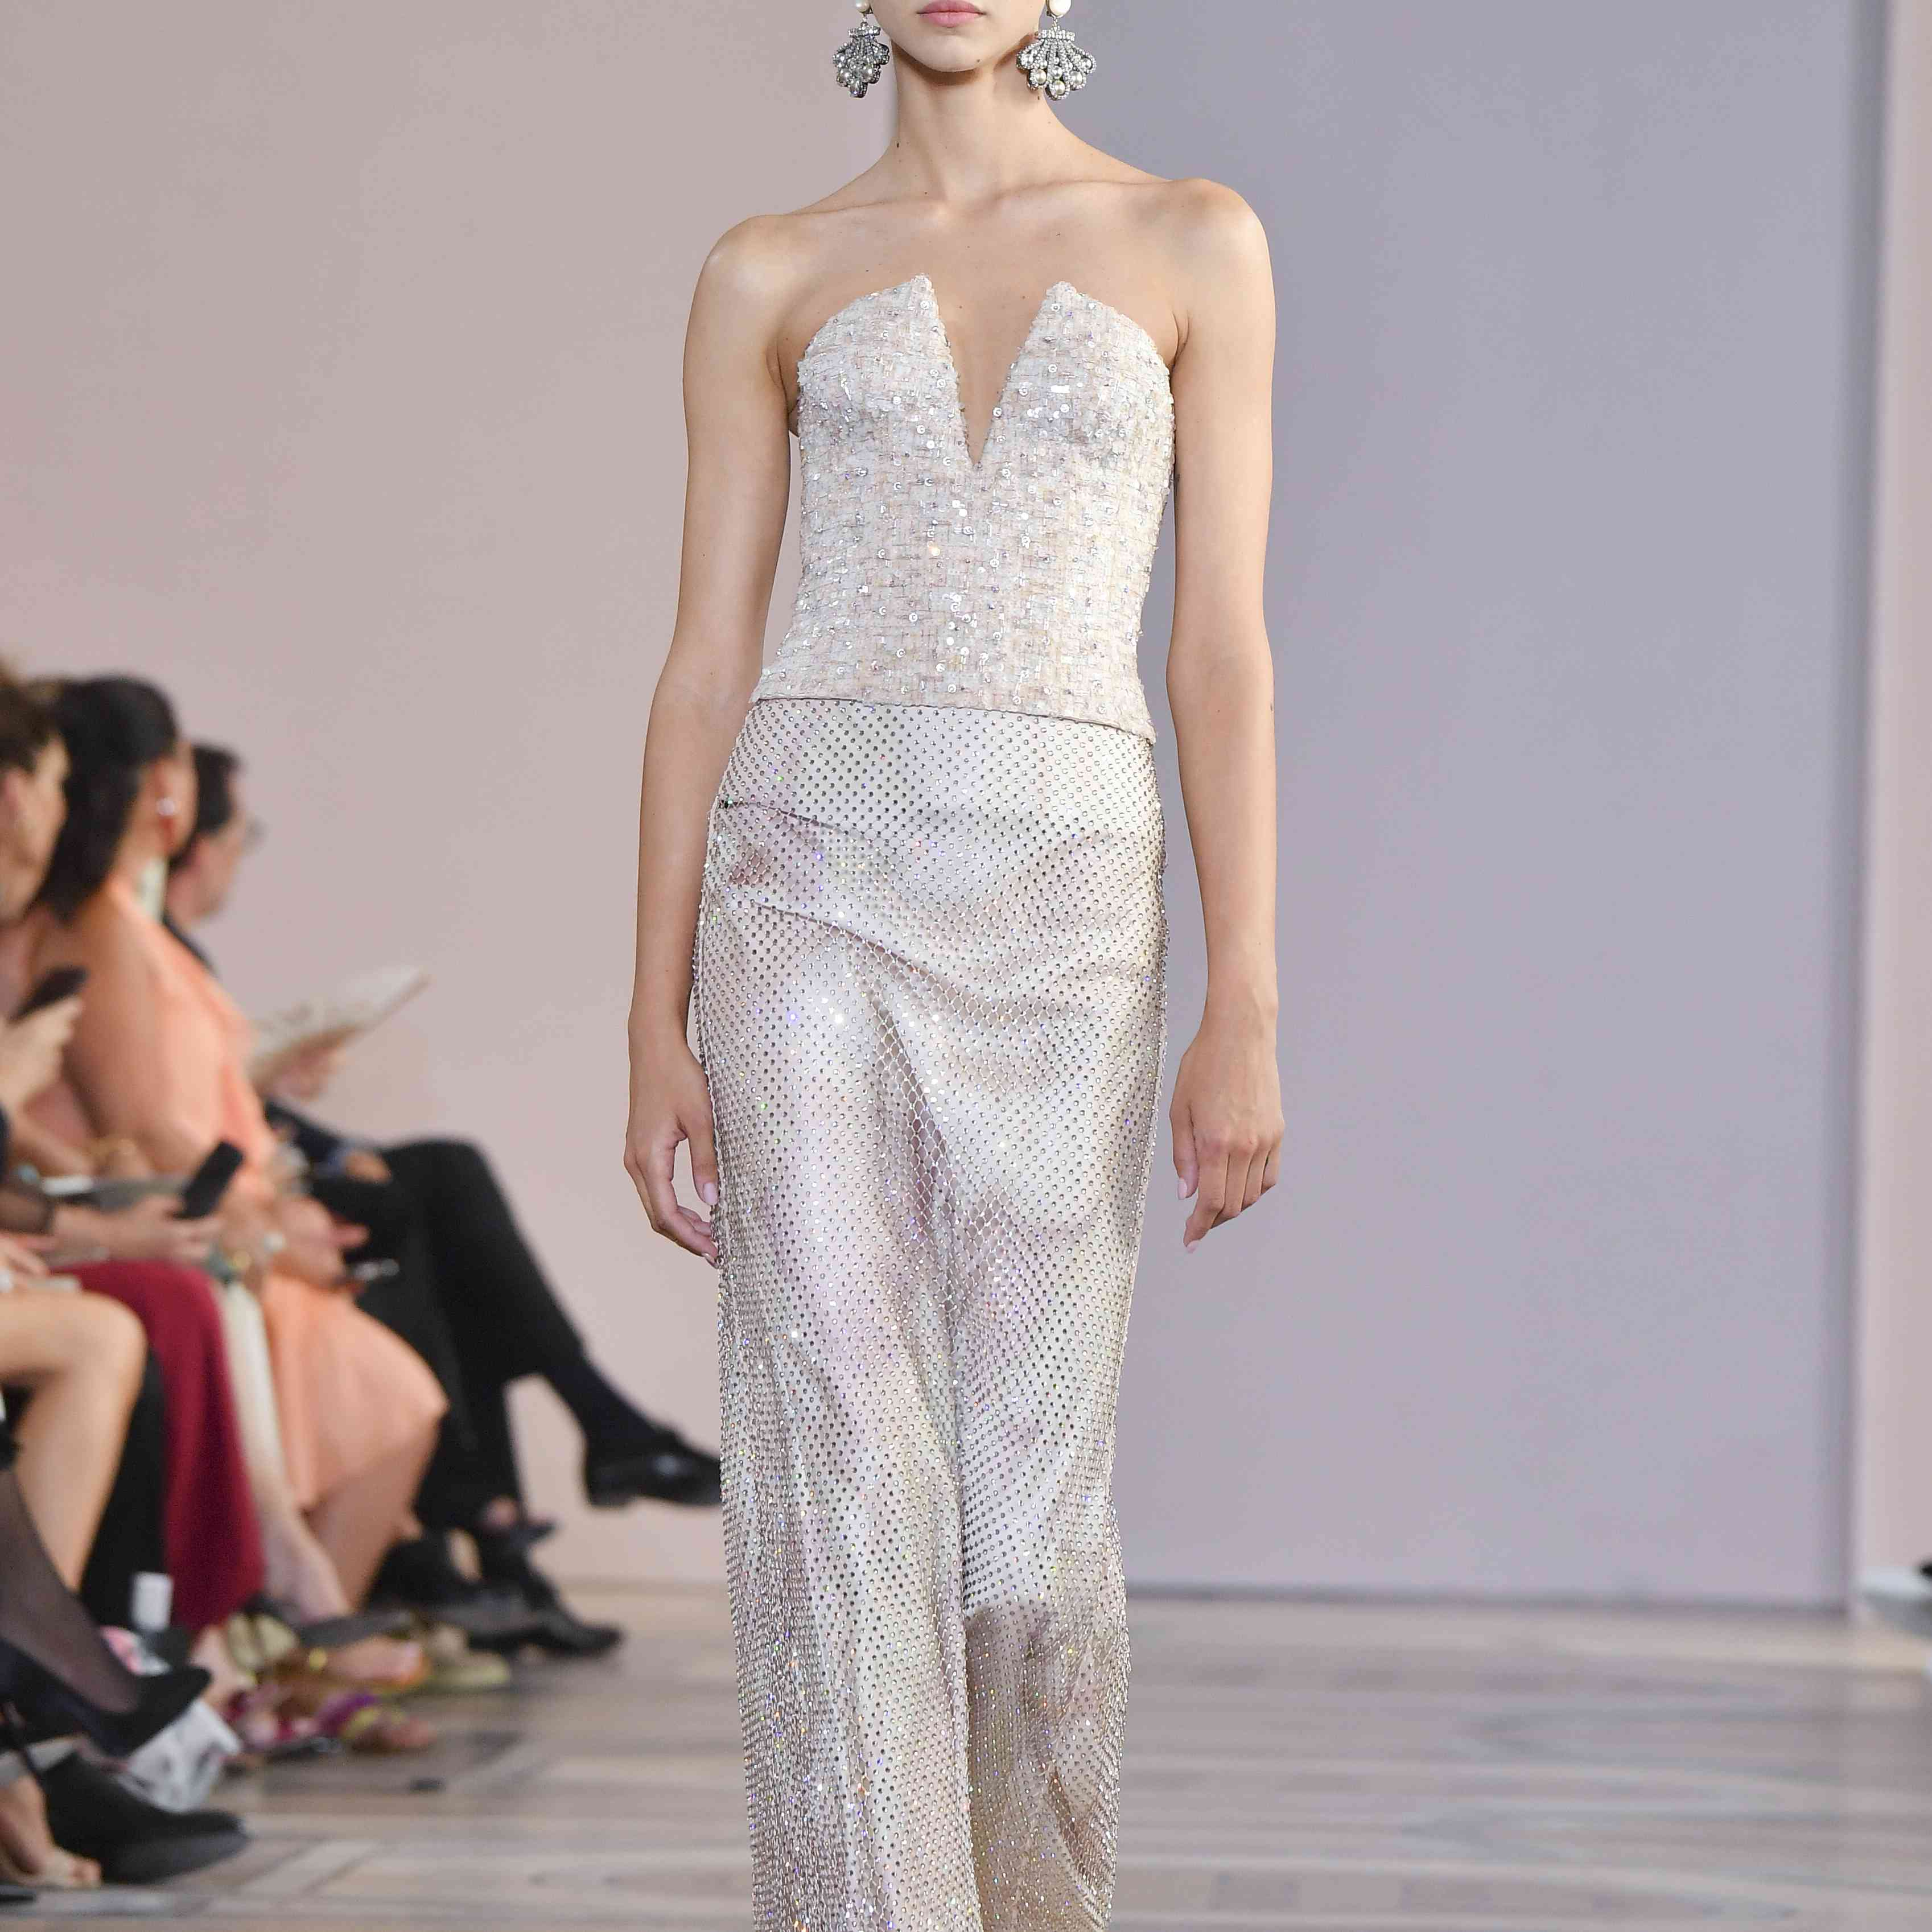 A model walks the runway in deep-cut embellished gown